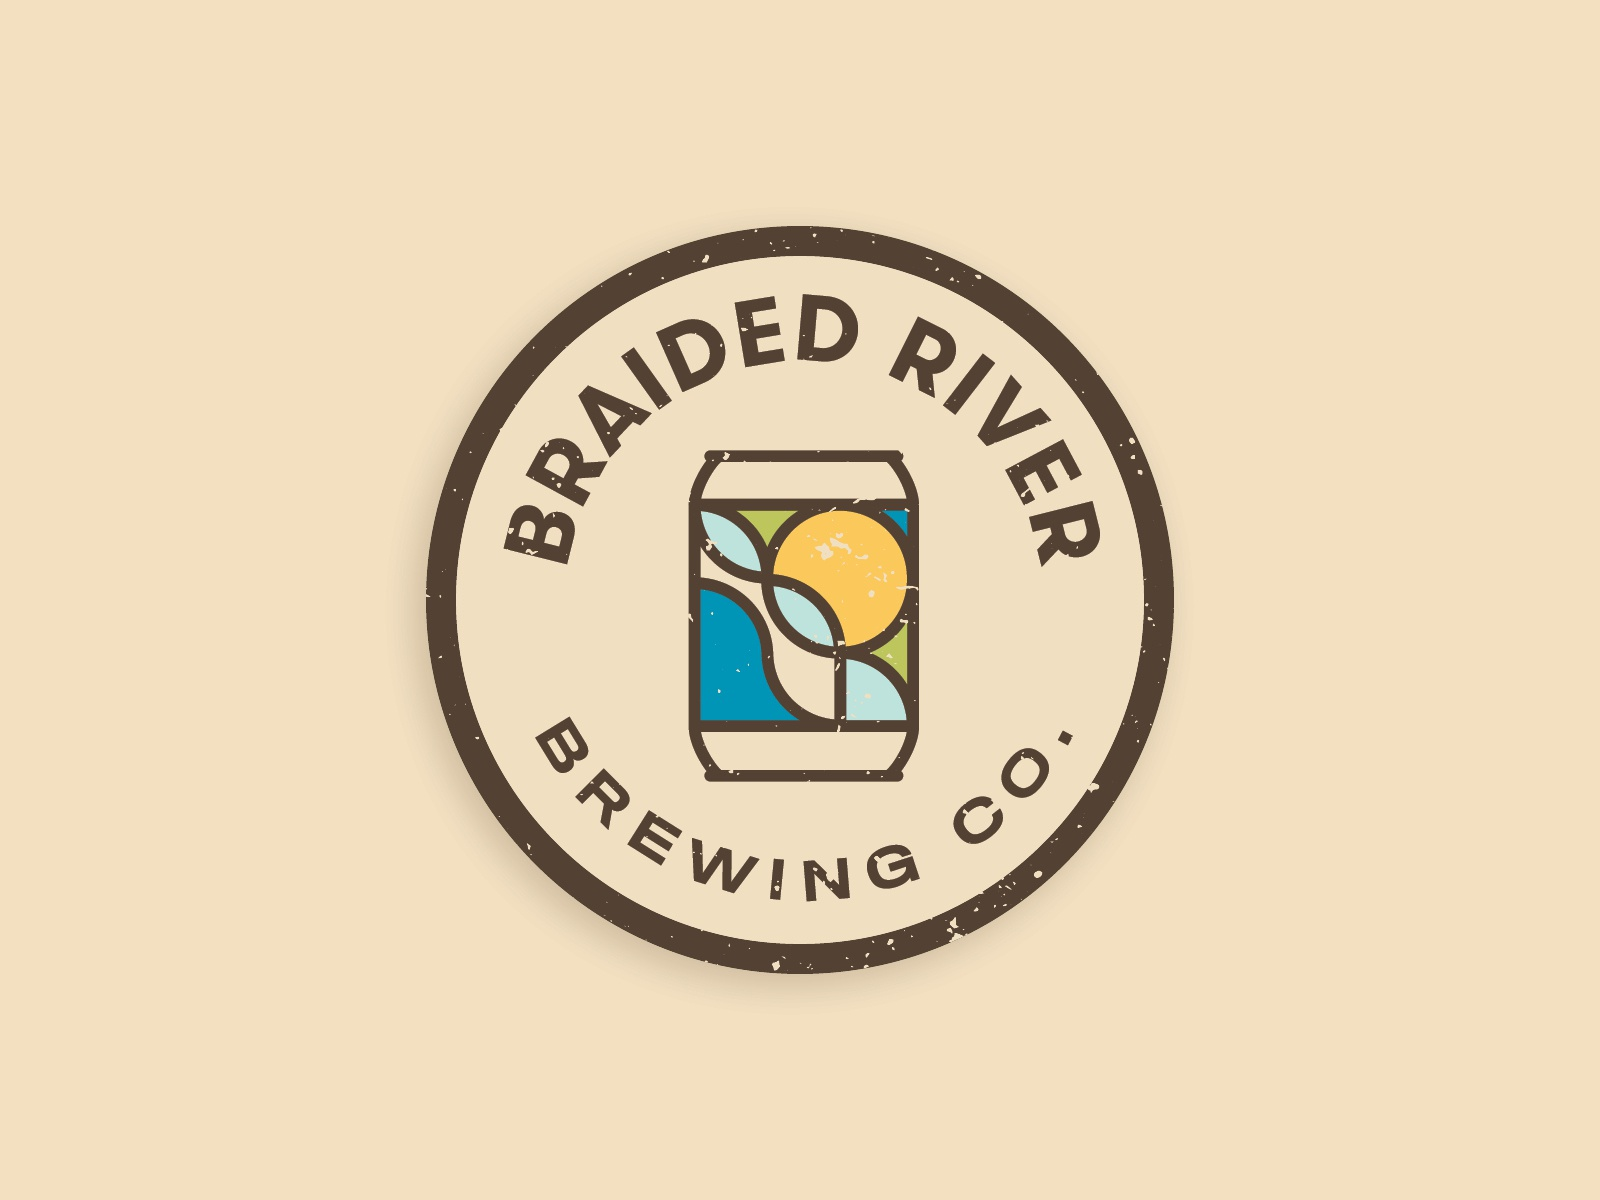 Braided River Brewing Company Merch